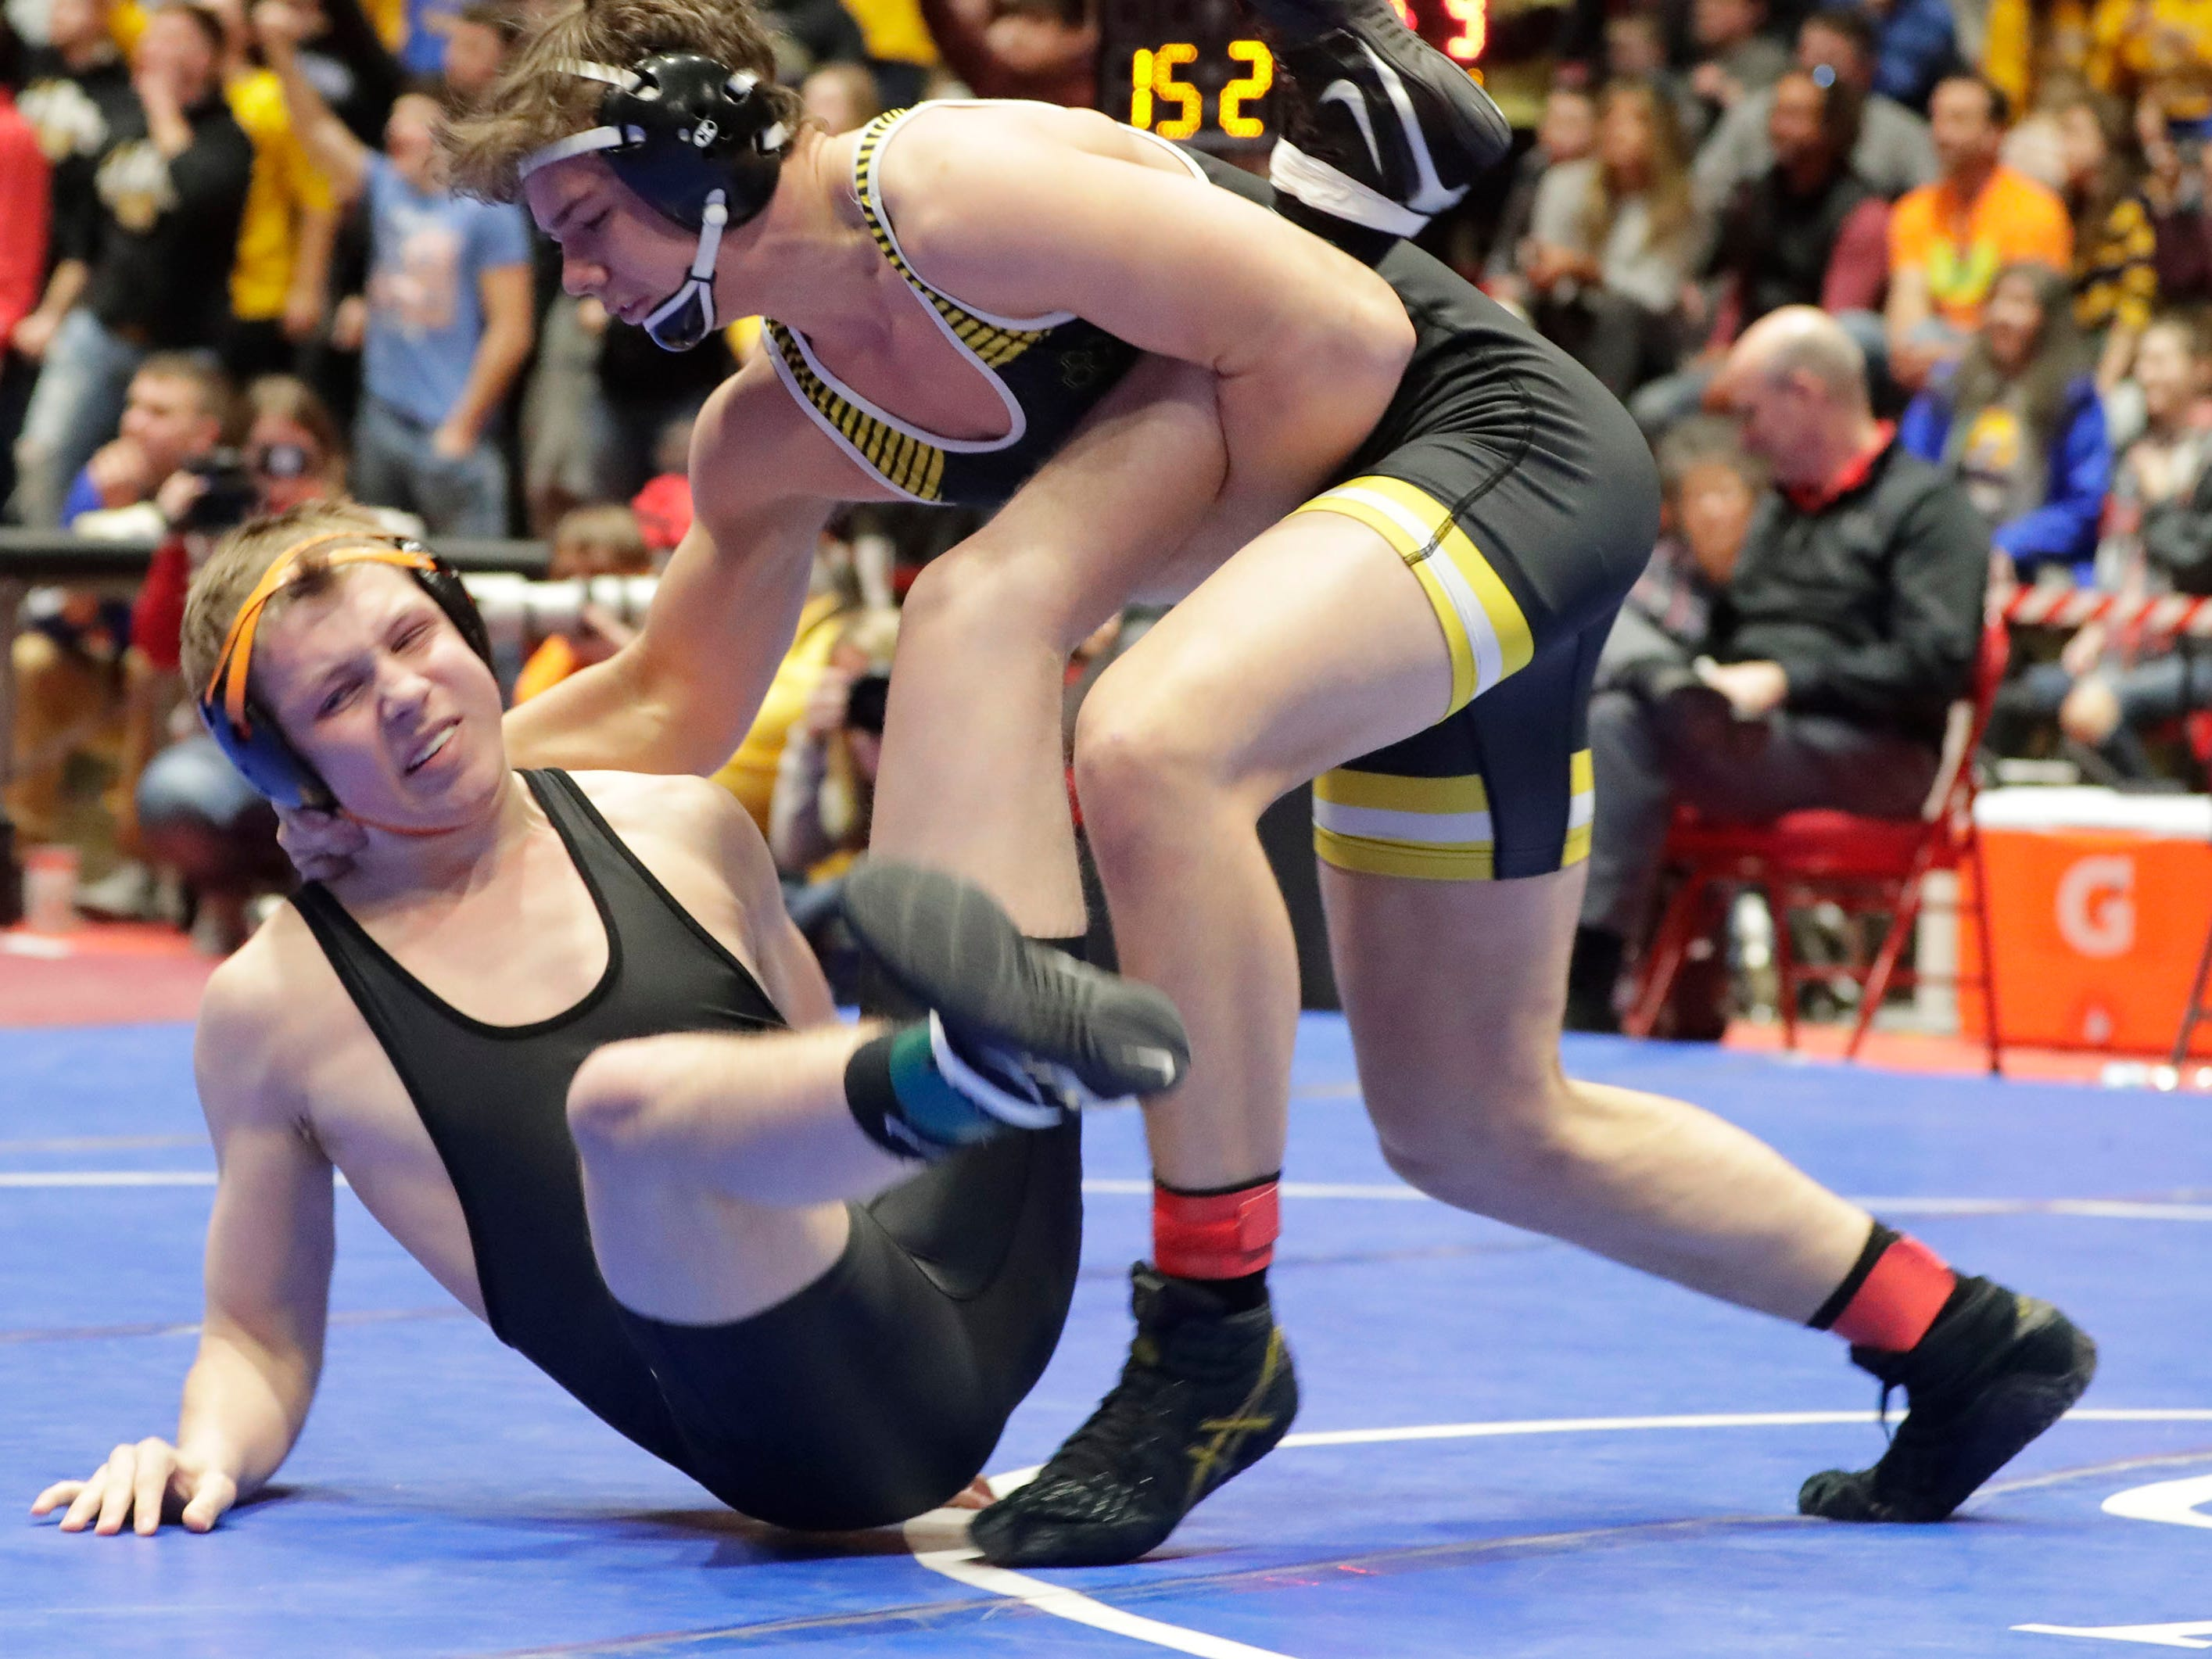 Stratford's Hunter Ford, left, grimaces as he lands by Fennimore's Will Ahnen in the 182-pound class, Saturday, March 2, 2019, in Madison, Wis.